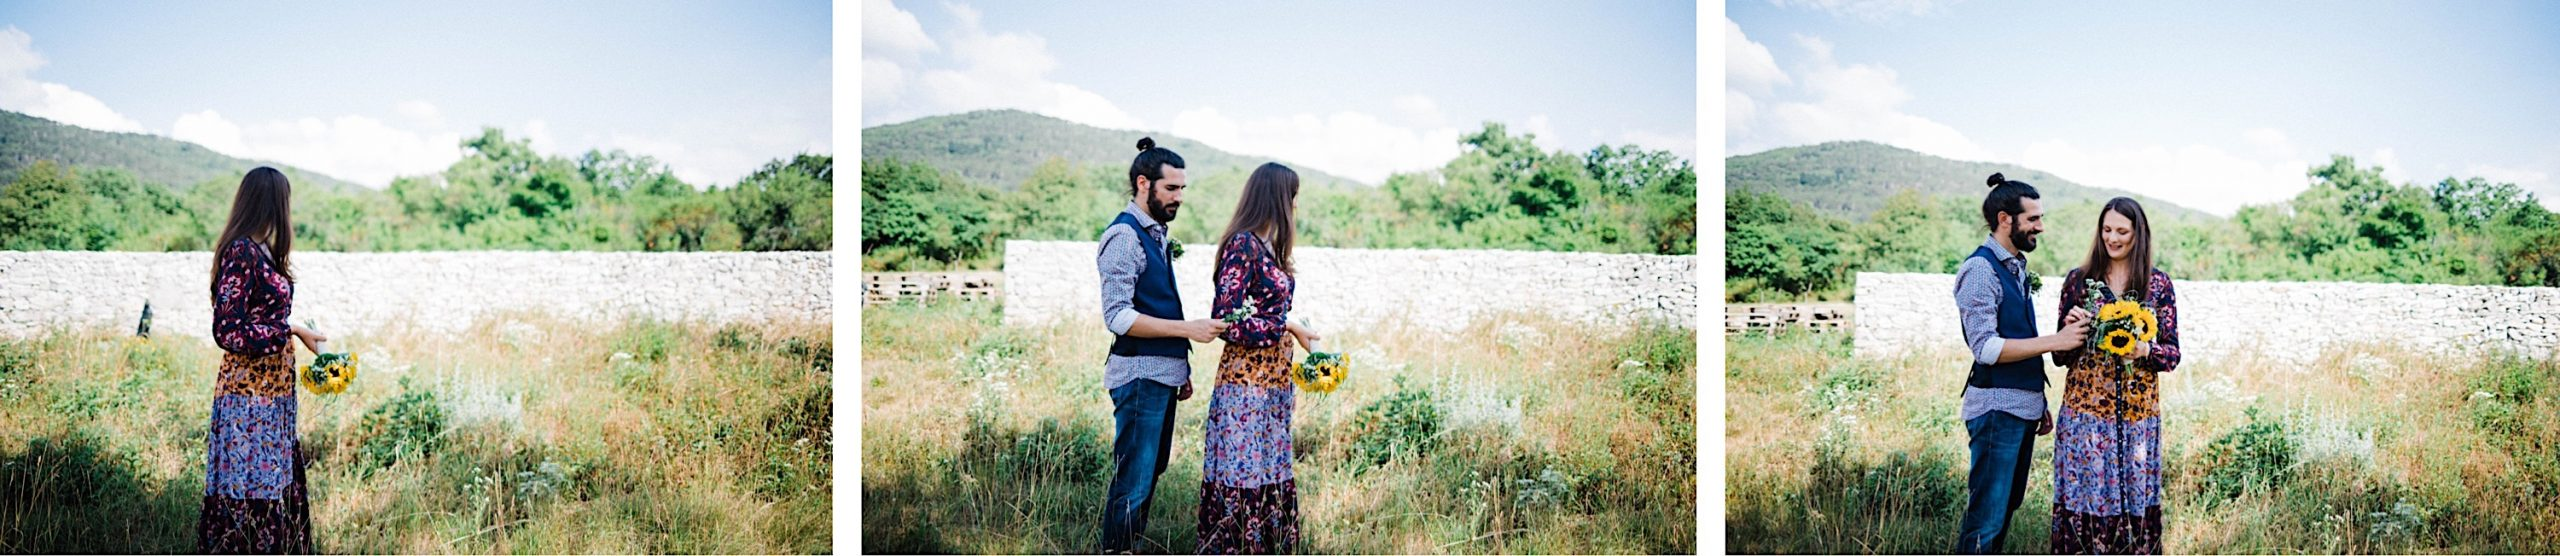 Three side-by-side photos of a newlywed couple standing in front of a traditional farm stonewall, in the Slovenian countryside. The groom walks into the frame and hands the bride a wildflower he's picked.